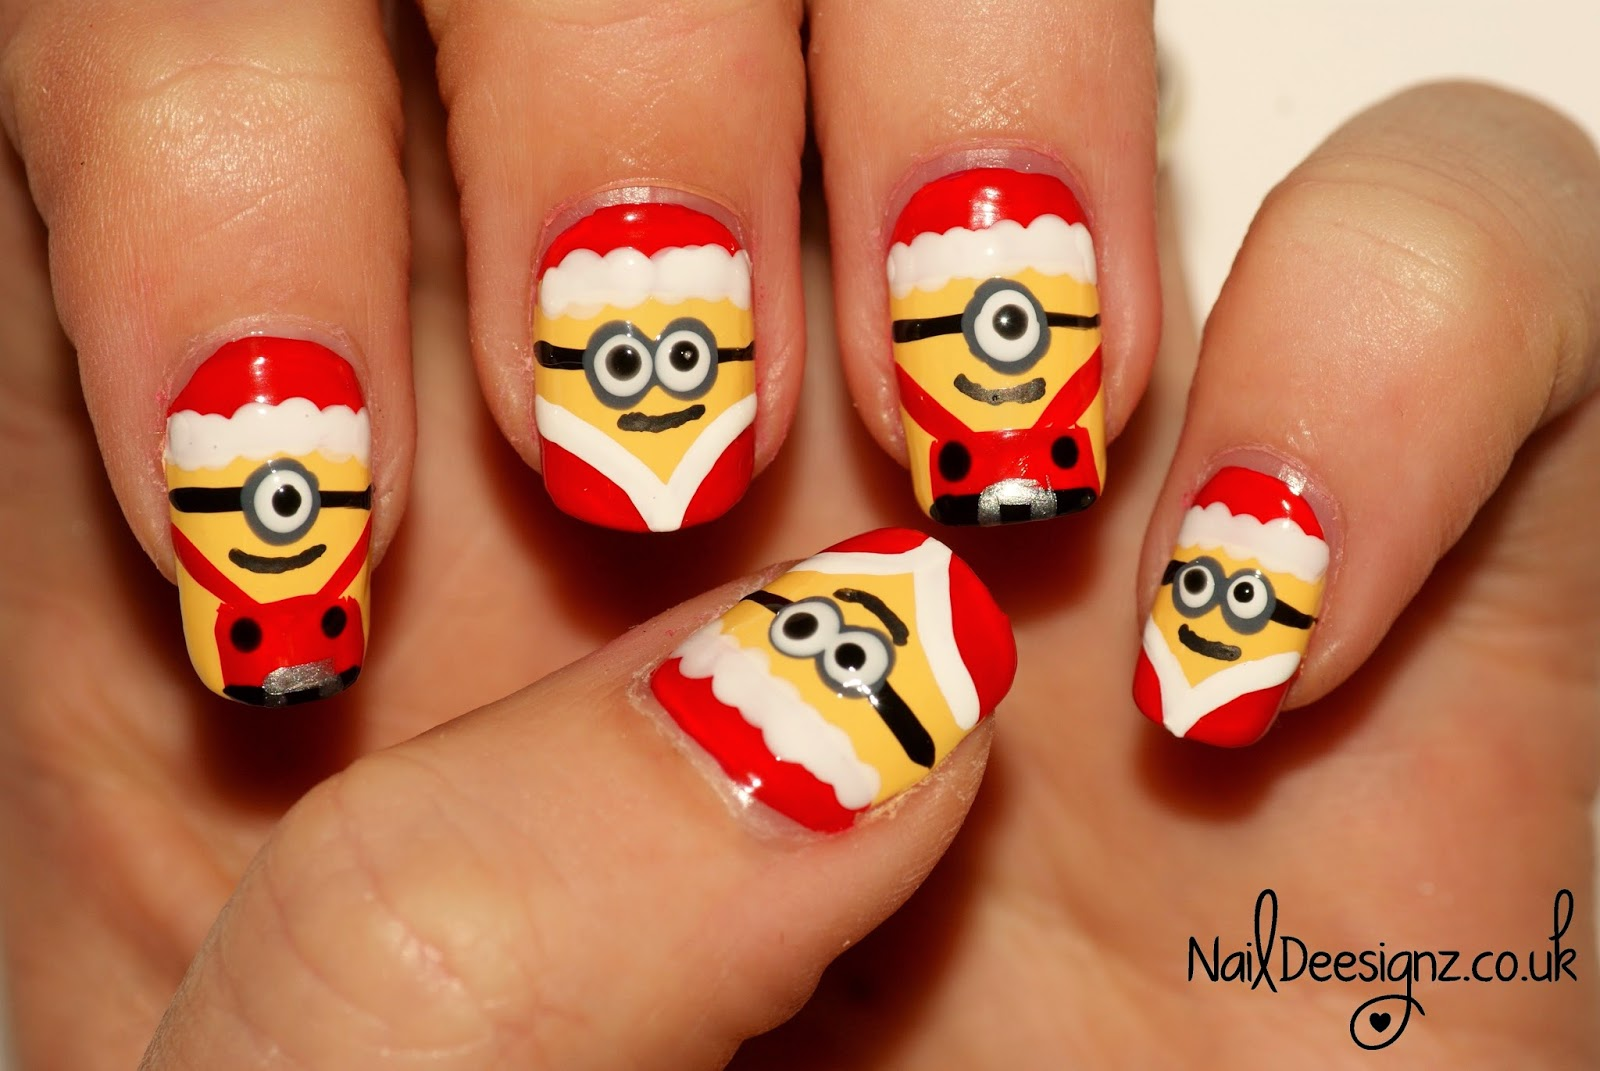 Naildeesignz Christmas Minion Nail Art